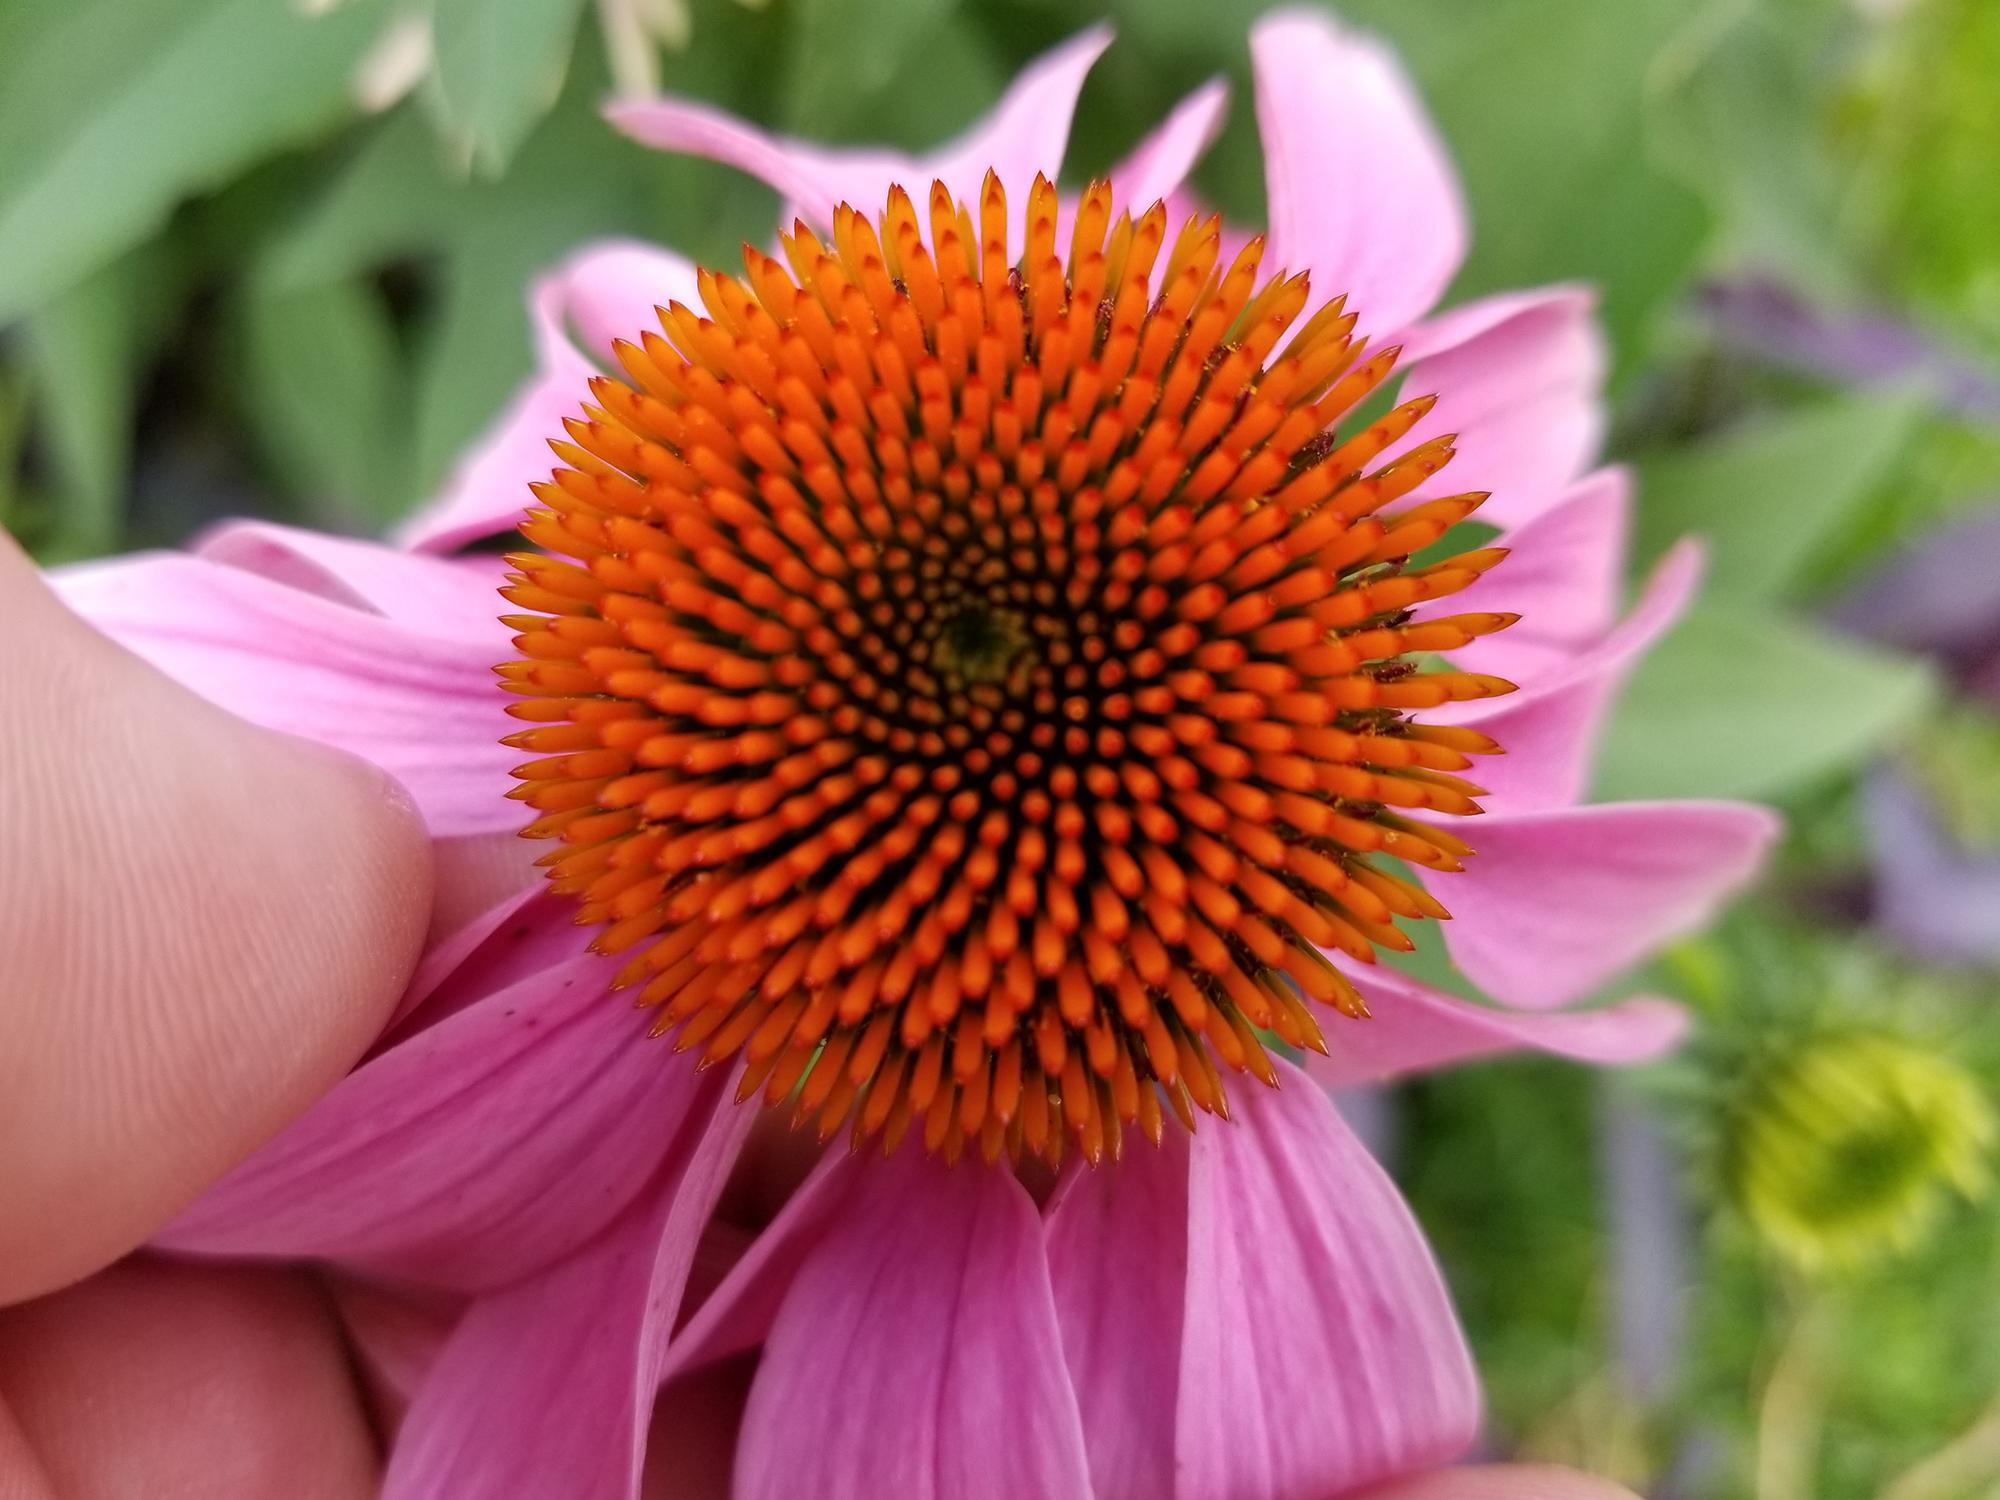 A thumb and fingers hold back the pink petals of a flower to reveal the spiny, orange center.